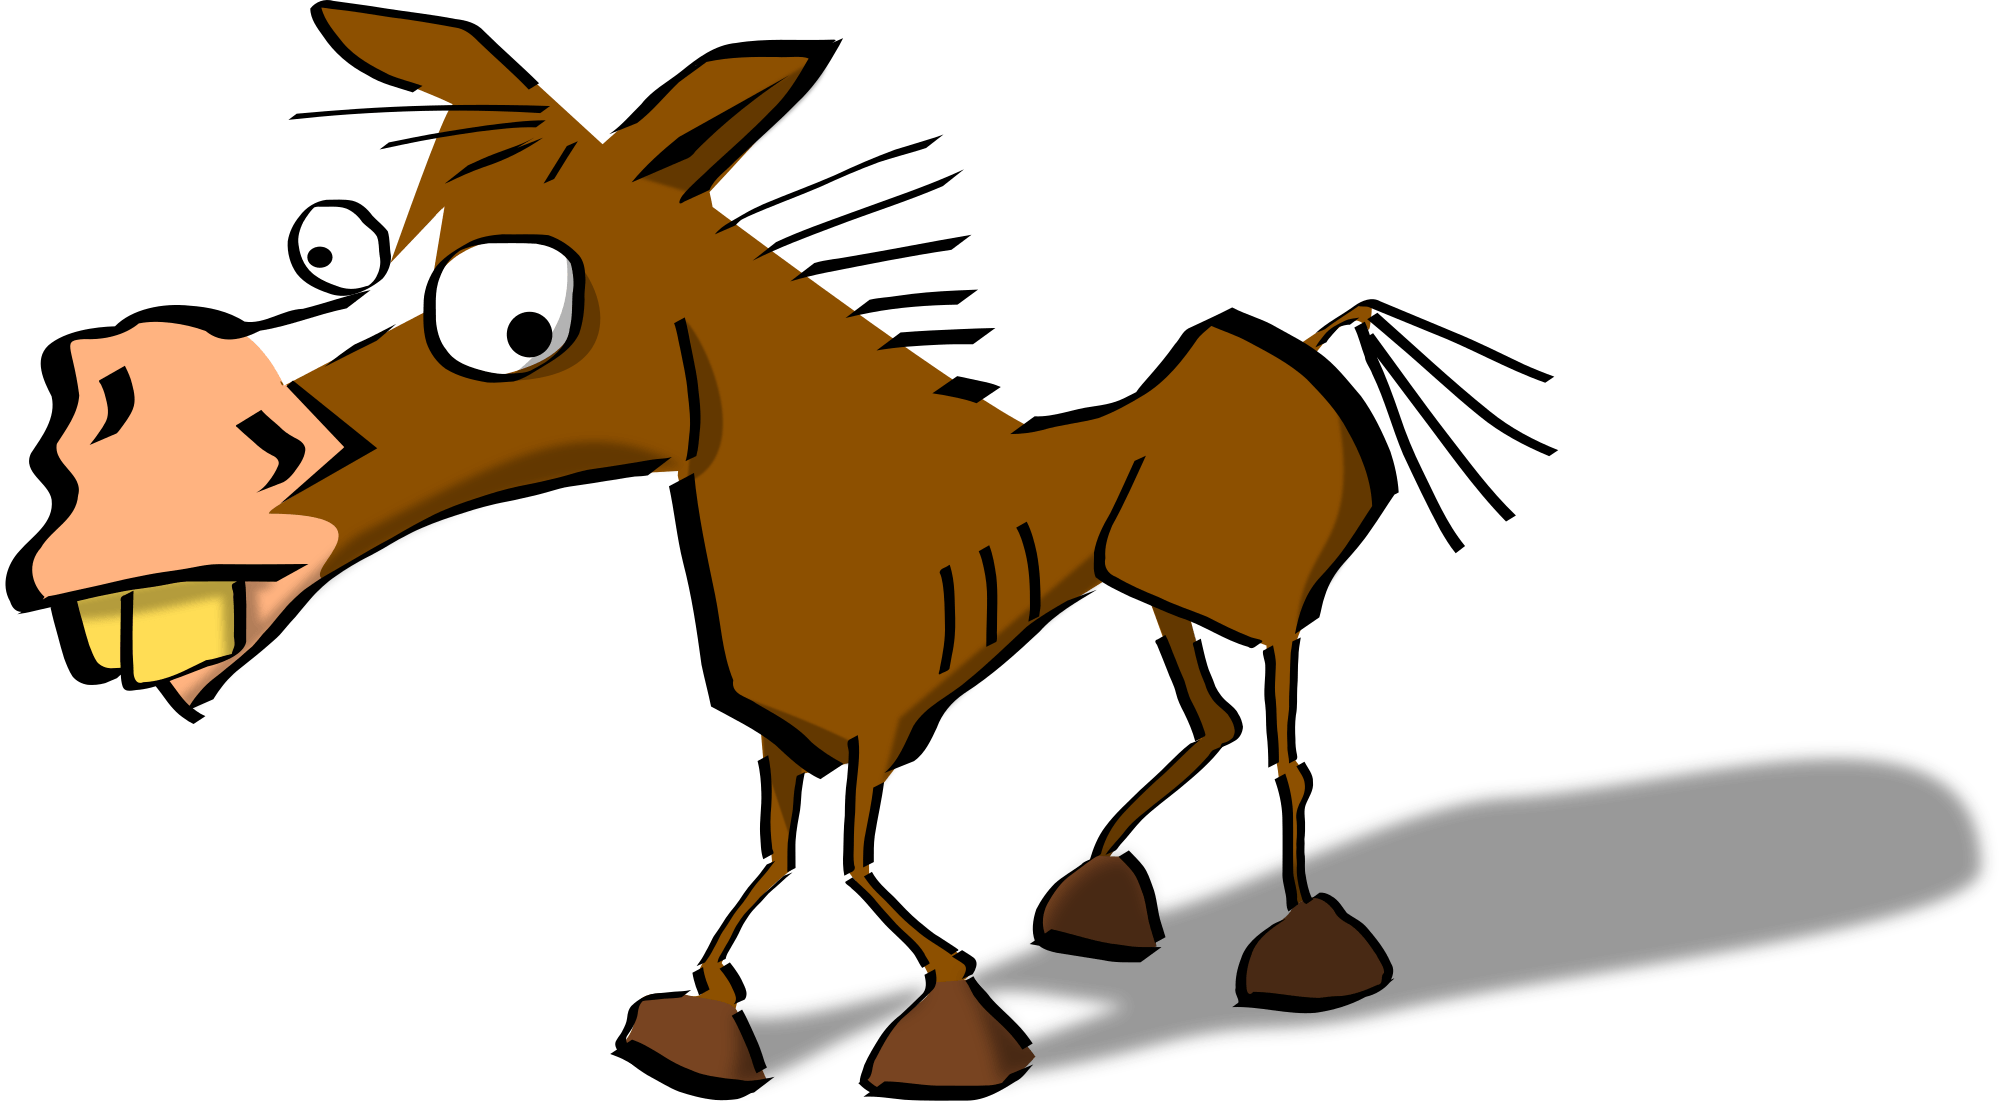 banner freeuse library Quarter horse at getdrawings. Mule clipart brown.